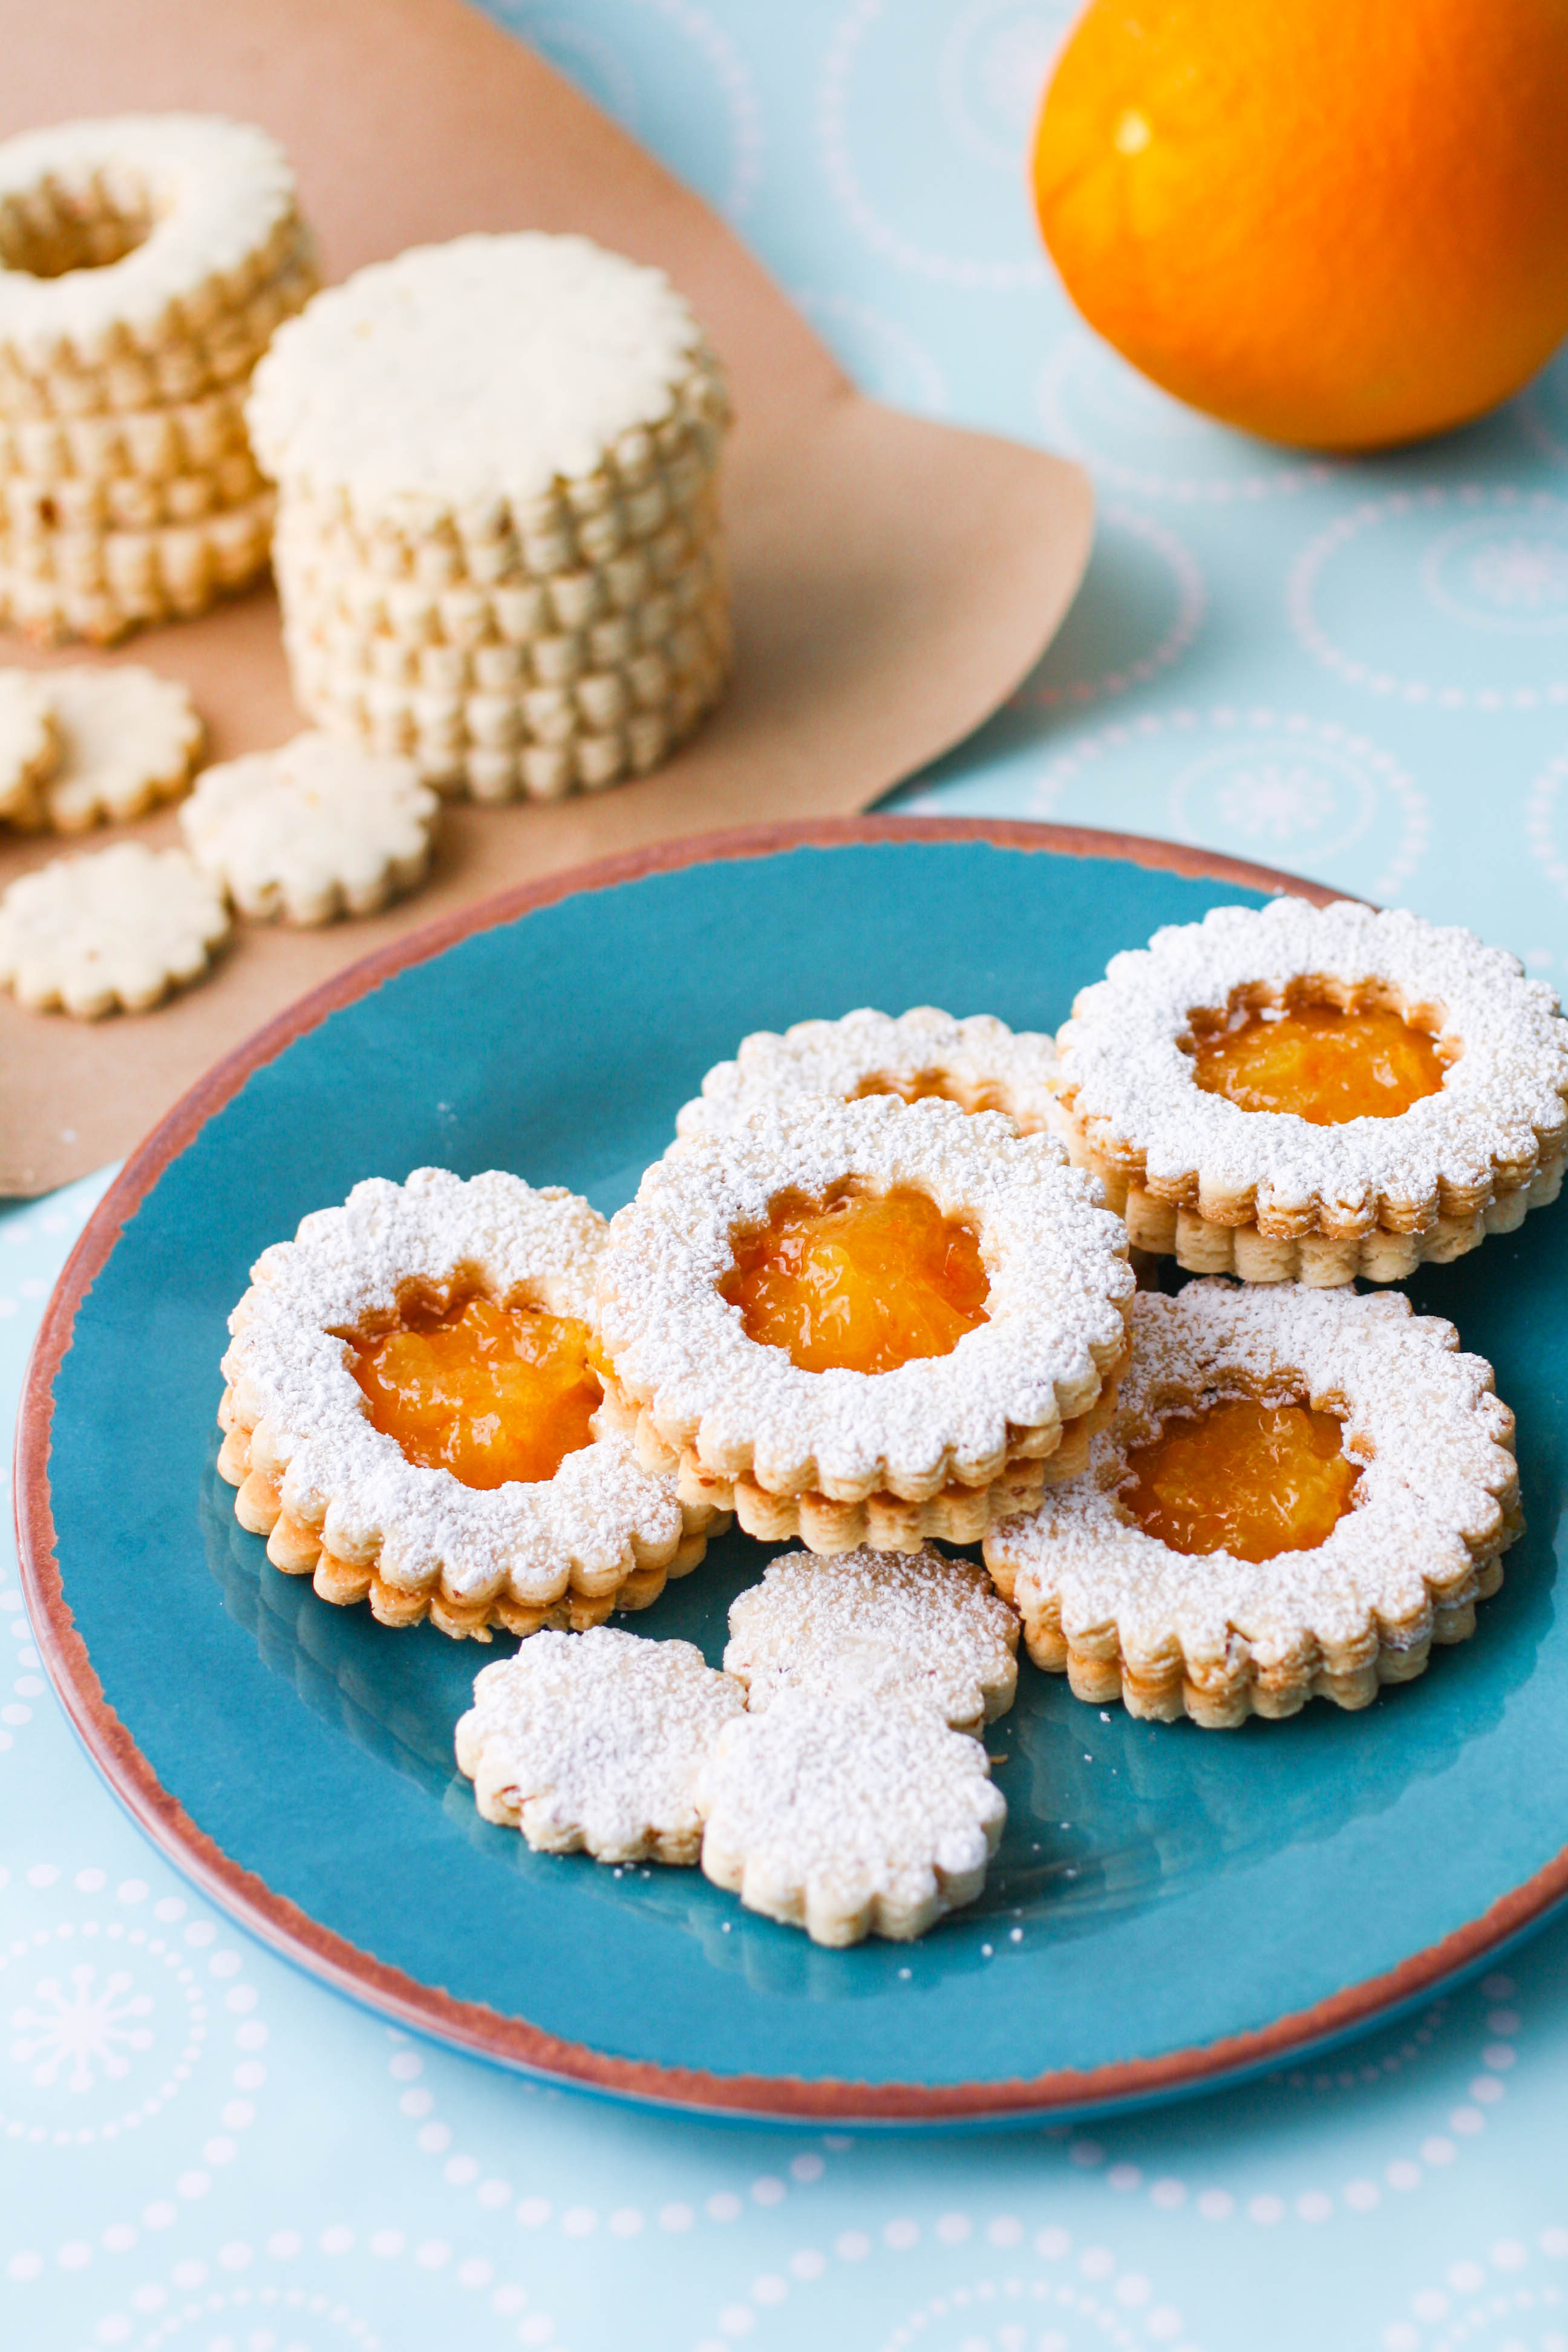 Linzer Cookies with Homemade Marmalade are beautiful for the holiday season. These Linzer Cookies make a great gift, too!